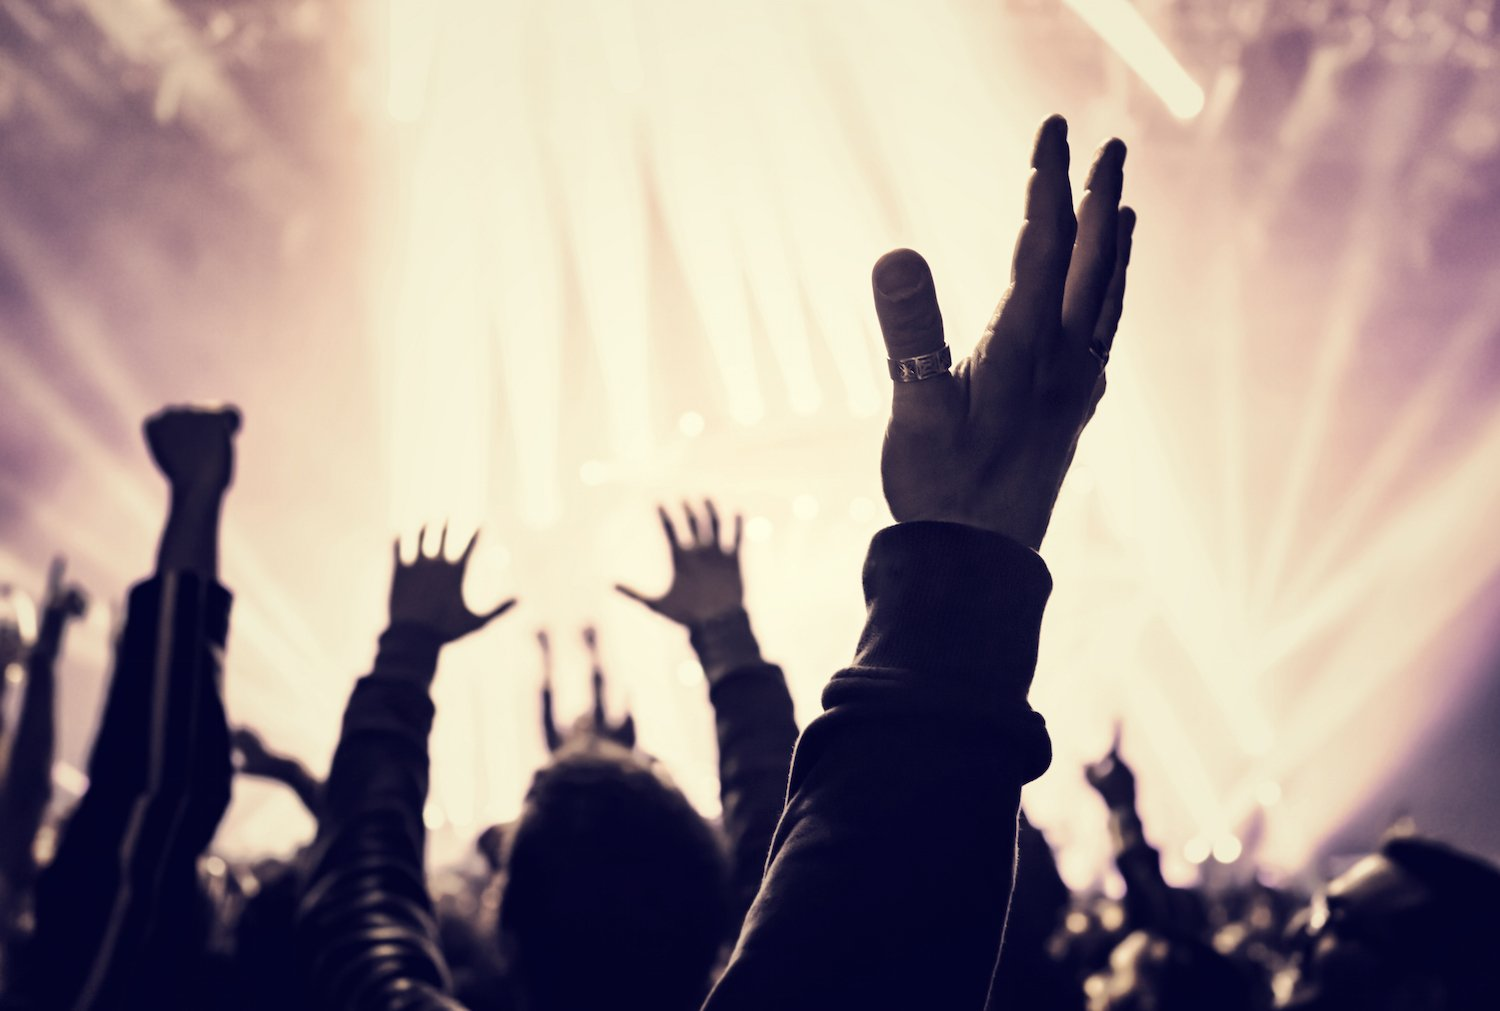 Grunge style photo of silhouette of people hands raised up on musical concert, enjoying music, dance